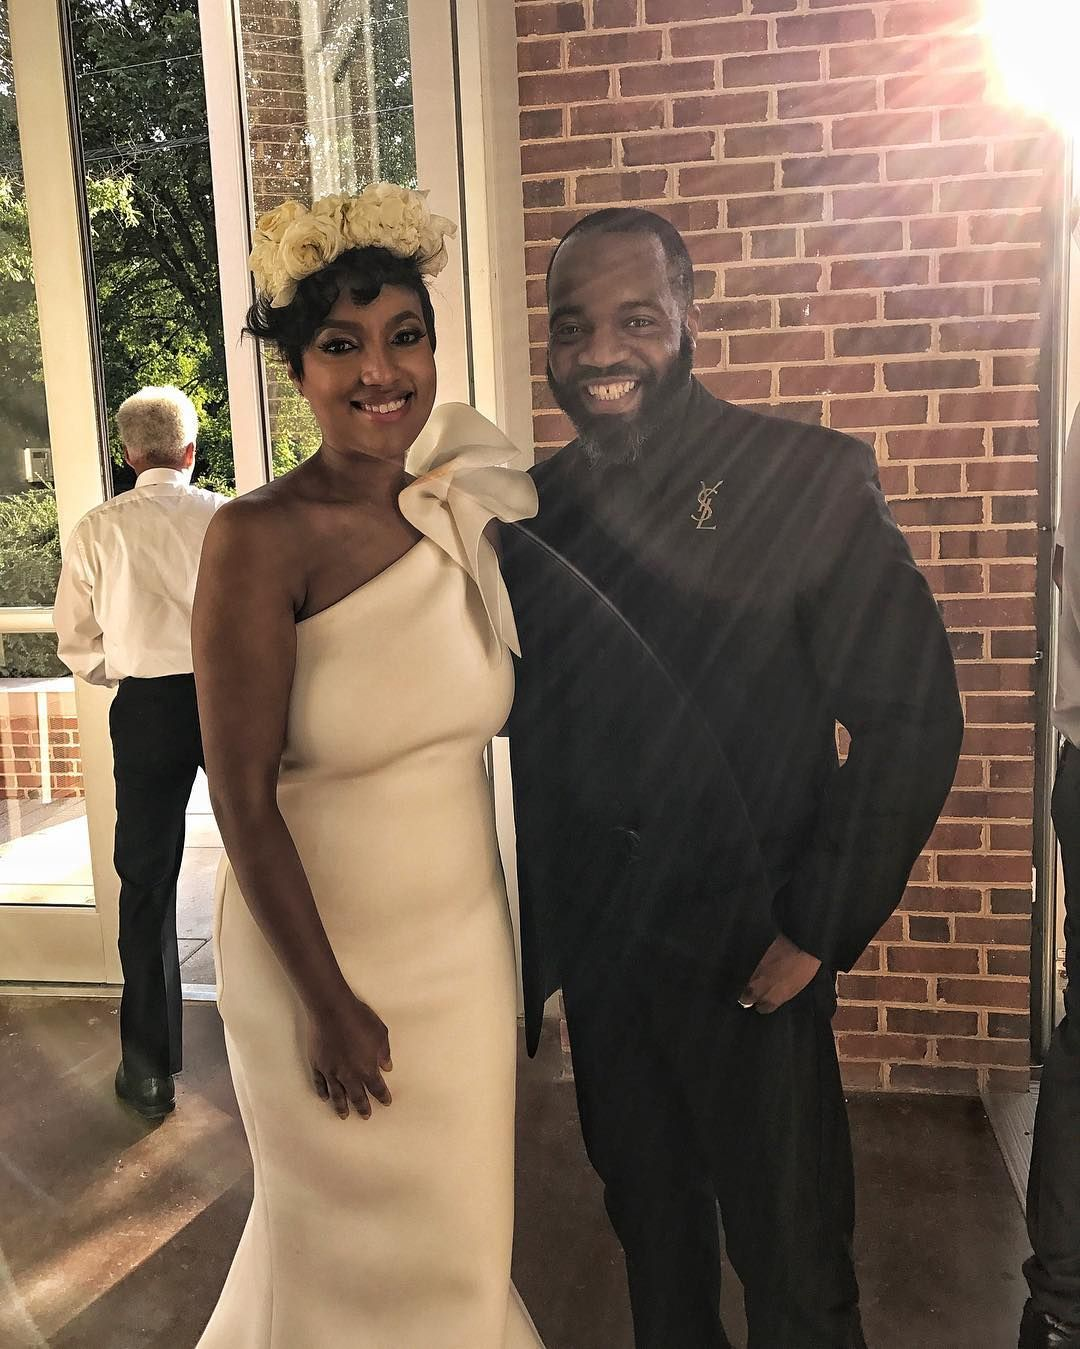 Houstonwehaveawedding u instagram photos and videos african and